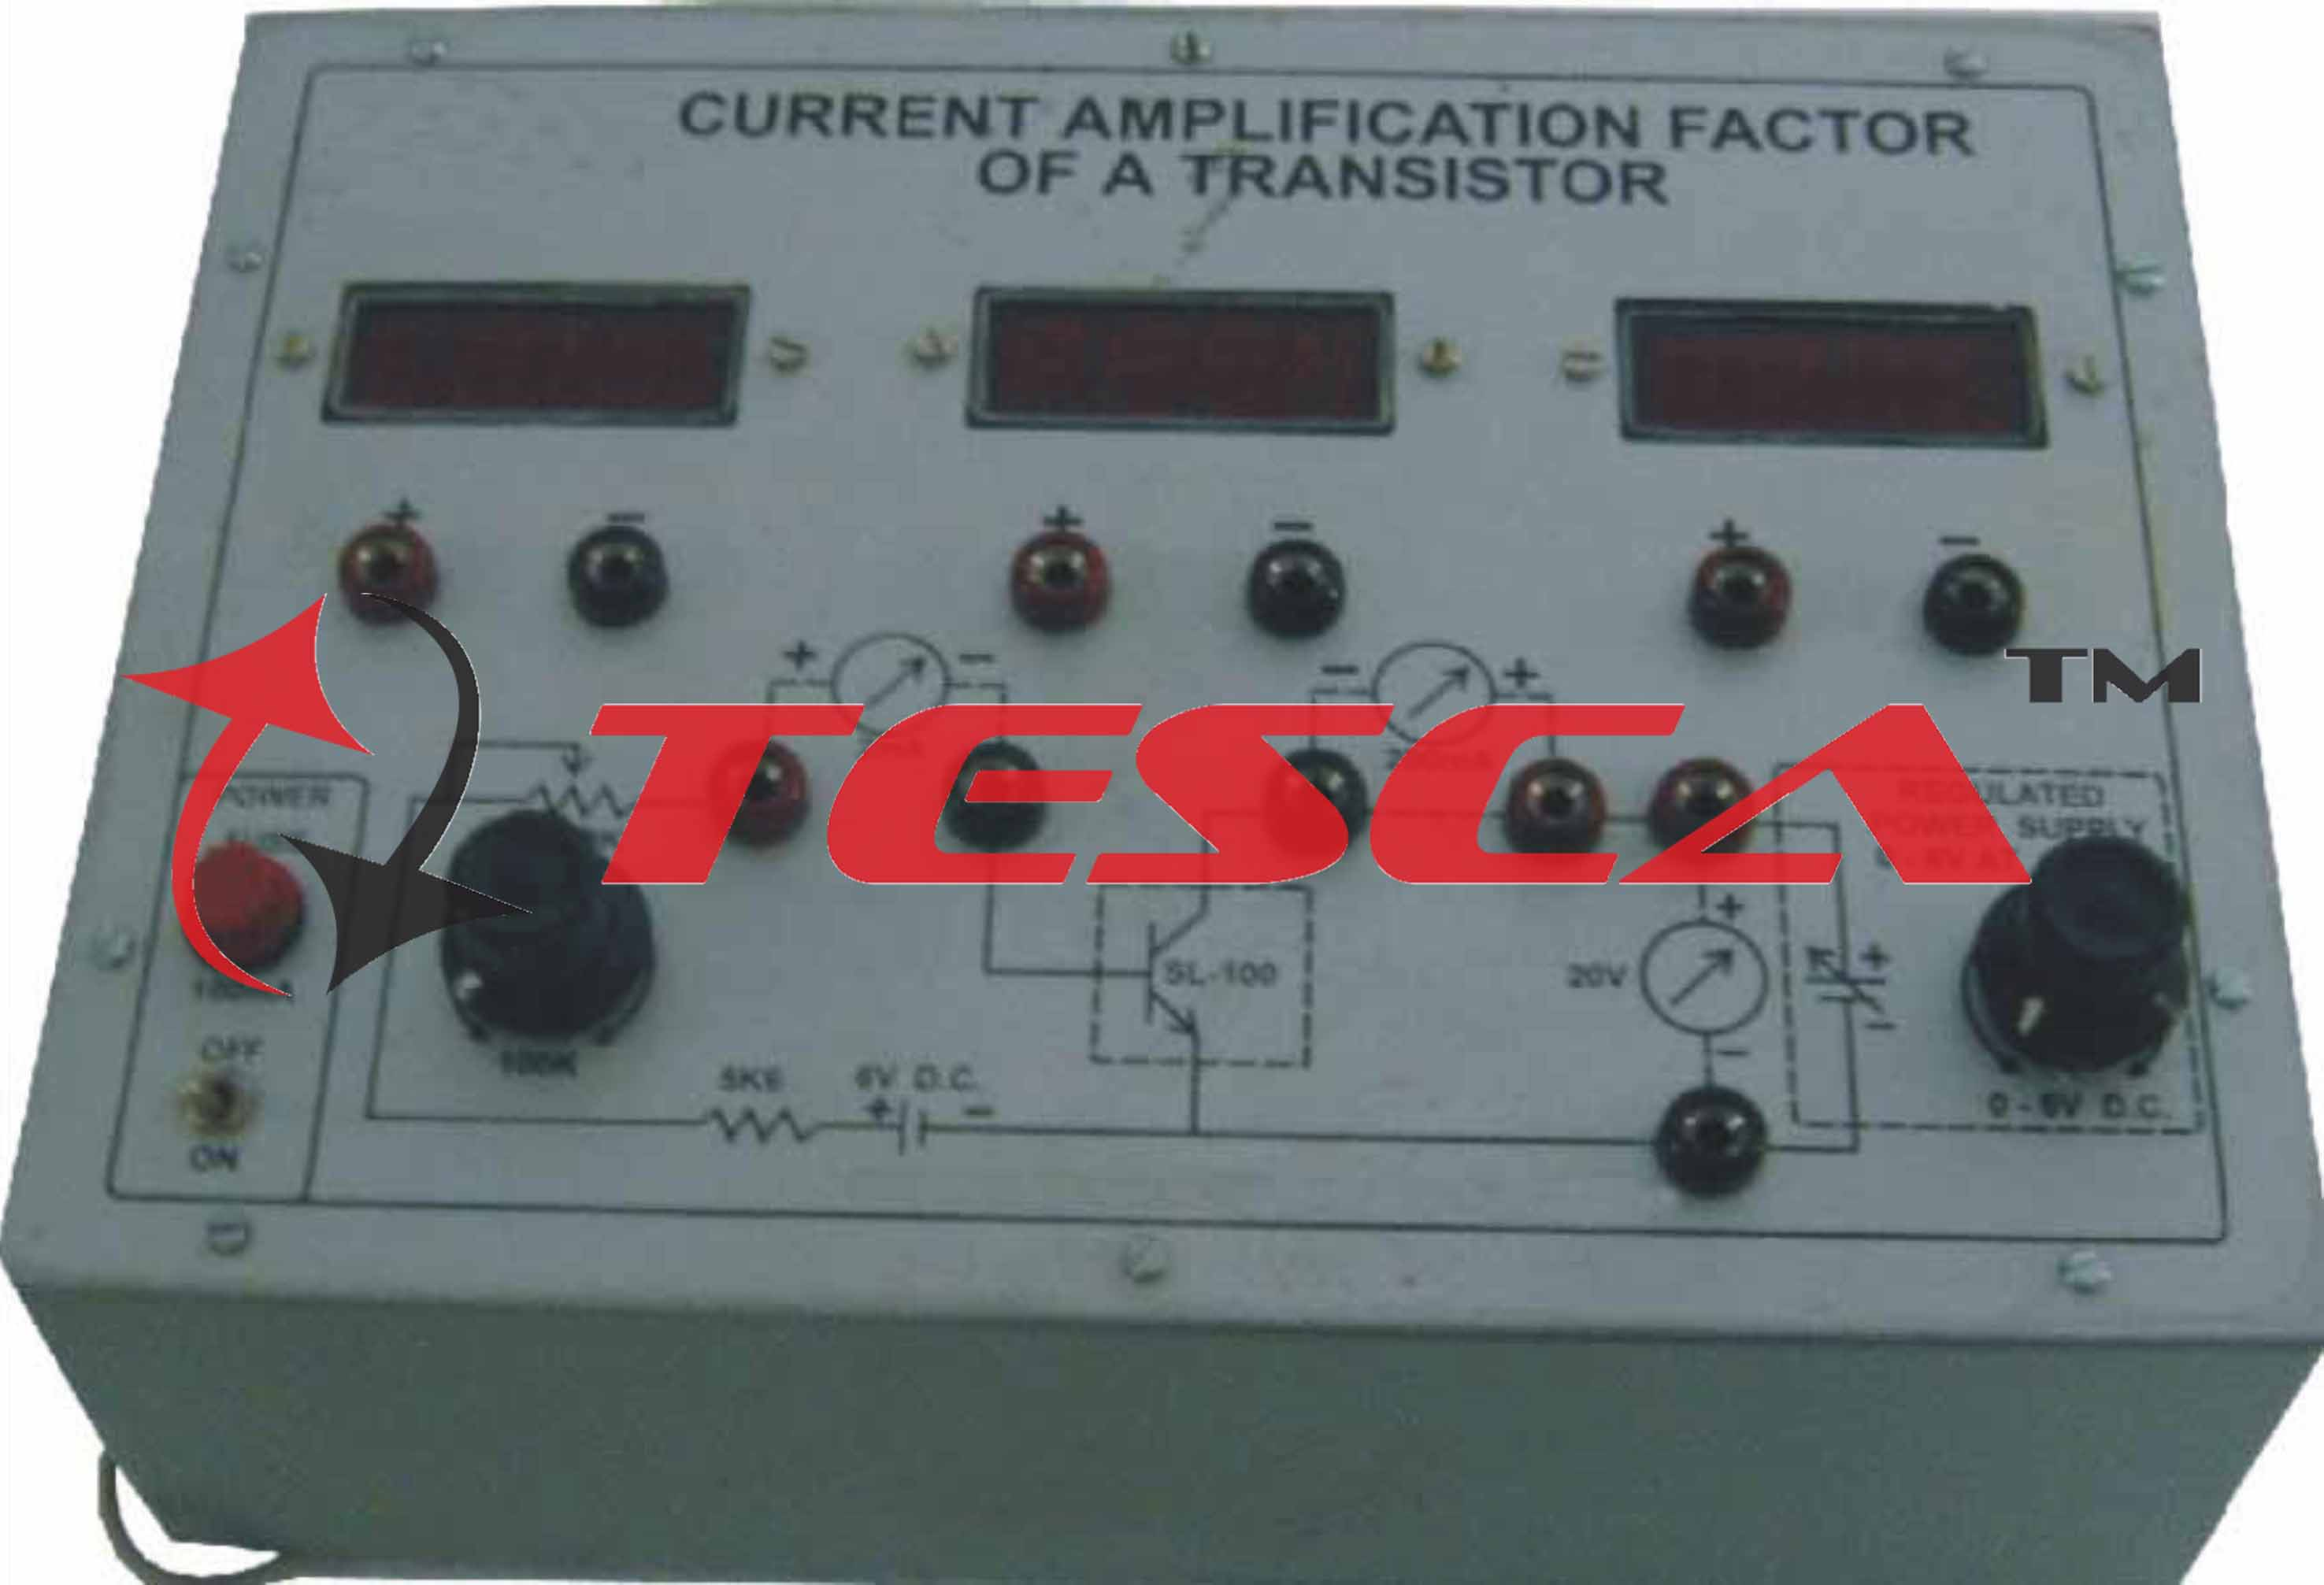 Current Amplification Factor Of A Transistor With Power Supplies And In Electrical Wiring Installation Technology 3 Digital Meters Cr